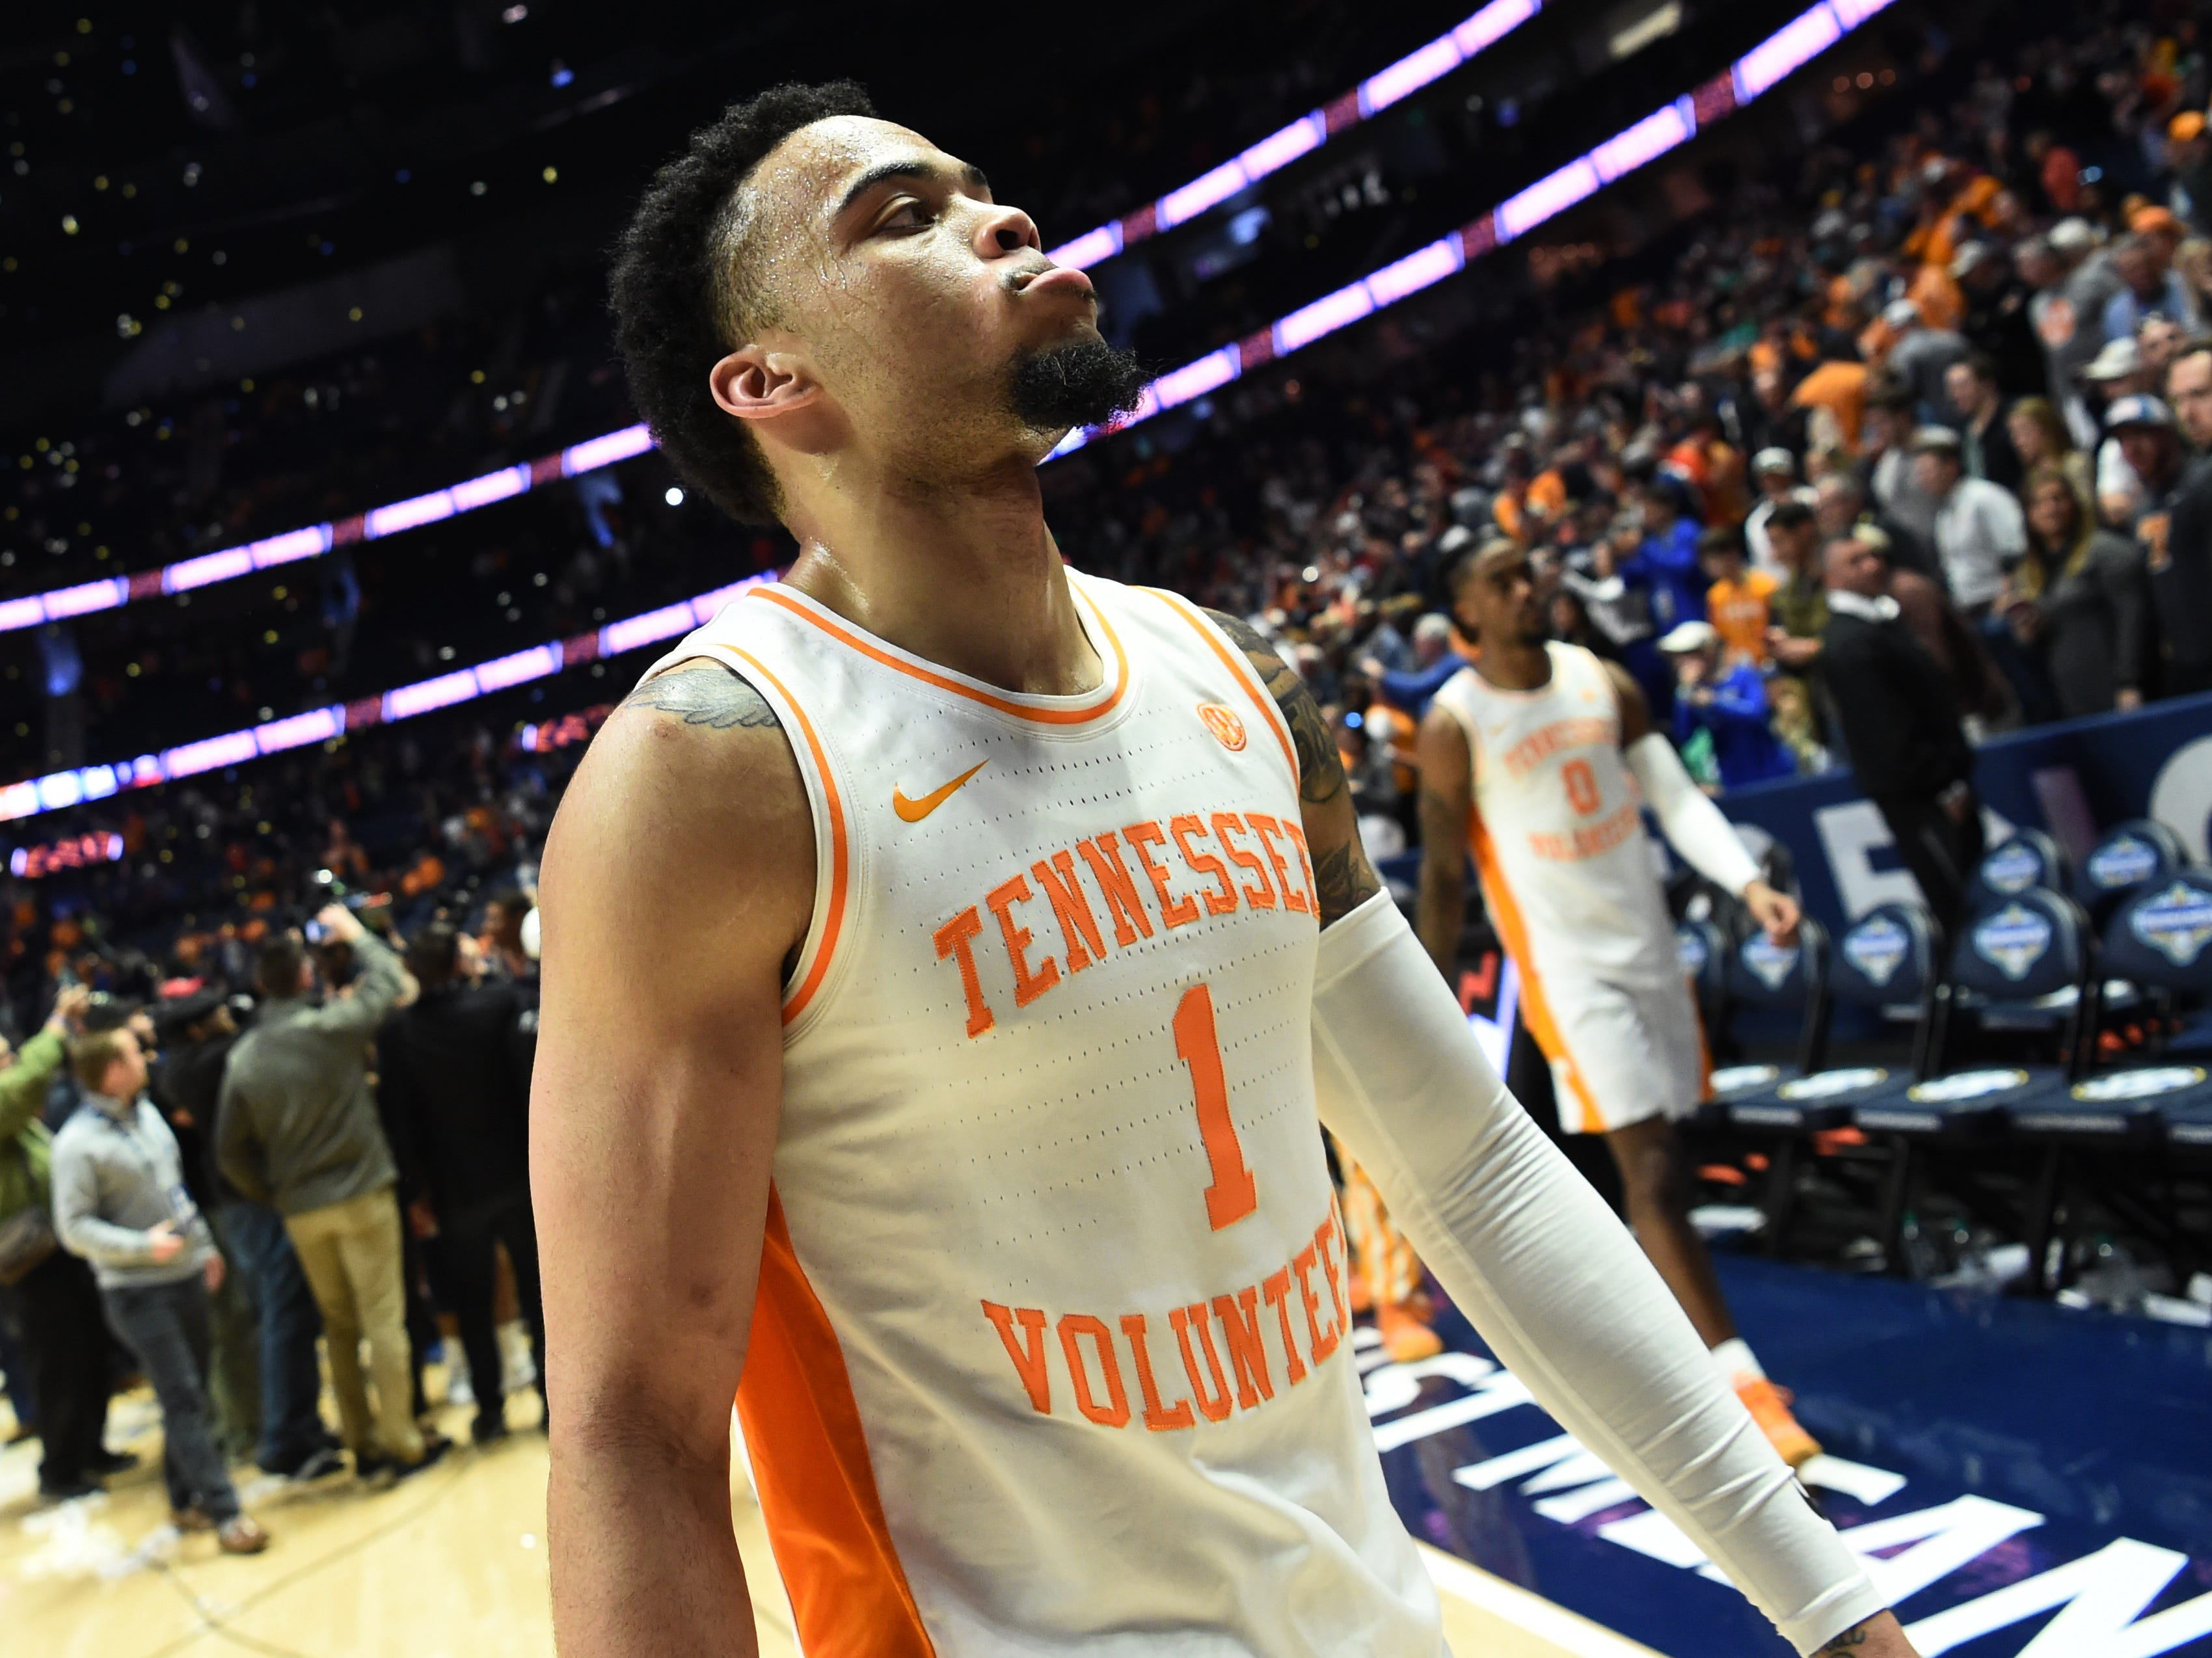 Tennessee guard Lamonte Turner (1) walks off the court after the team's loss to Auburn in the SEC Men's Basketball Tournament championship game at Bridgestone Arena in Nashville, Tenn., Sunday, March 17, 2019.